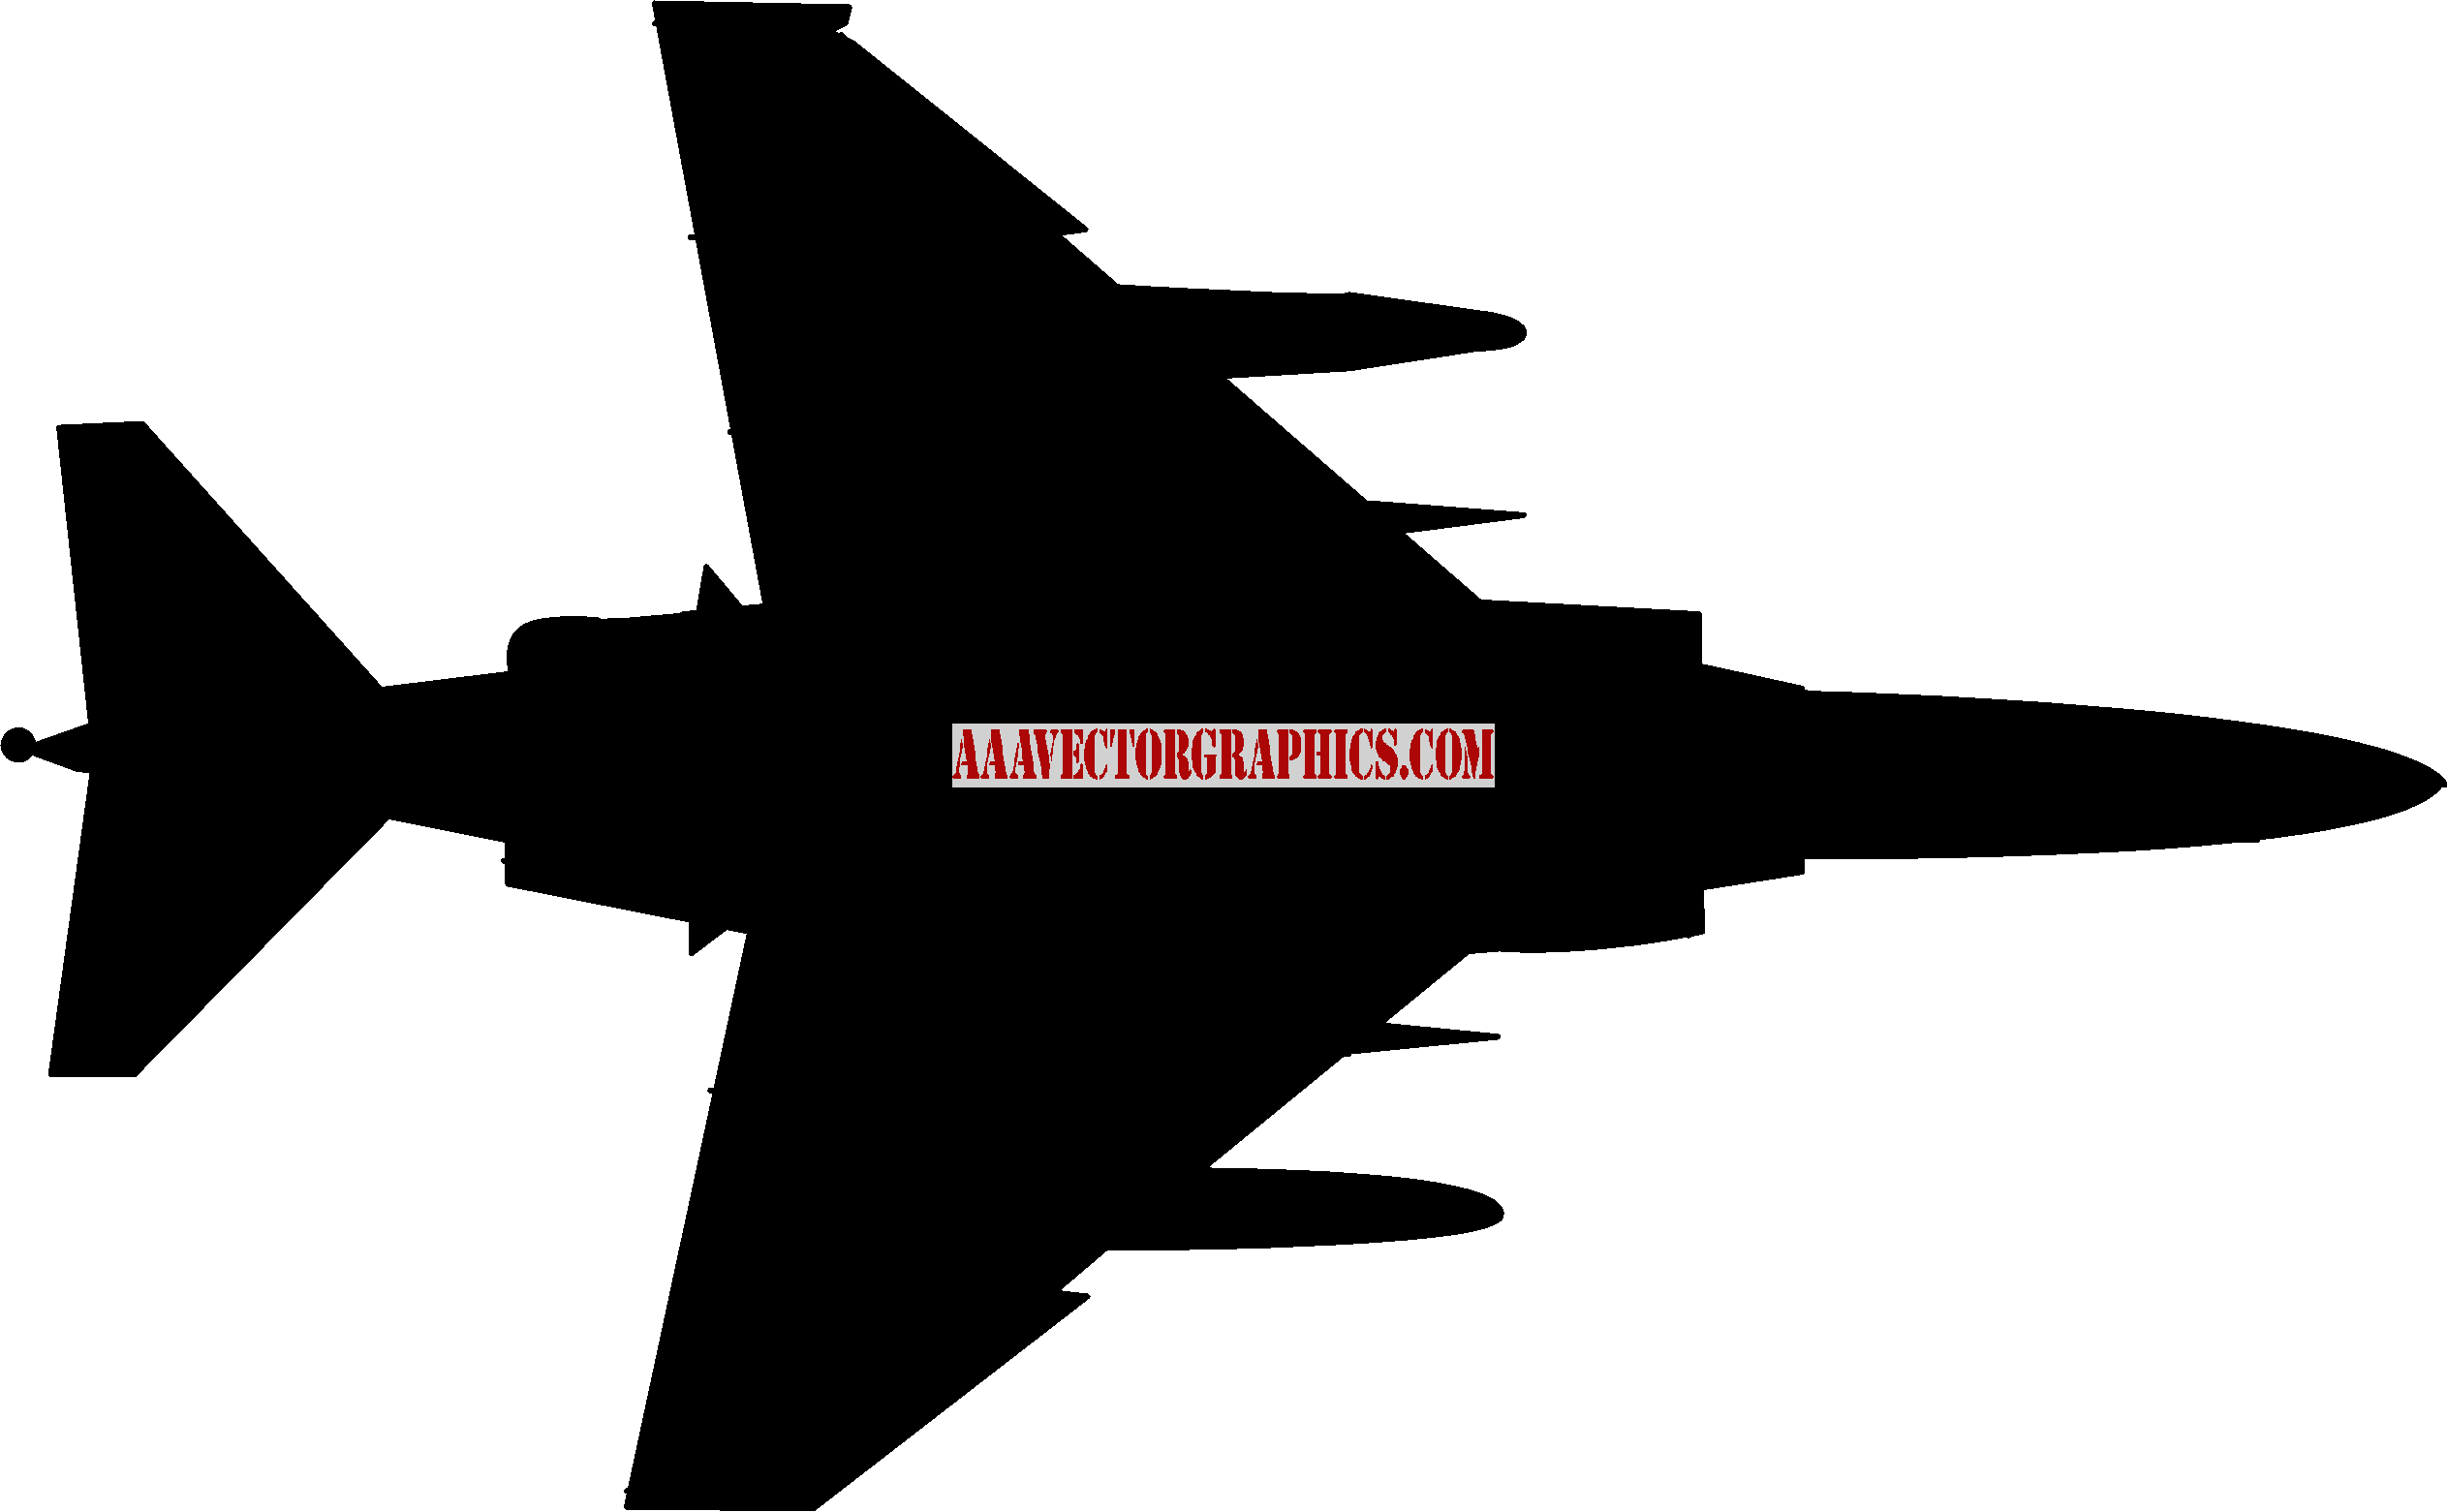 Pilot clipart aircraft engineer. Fighter jet silhouette panda